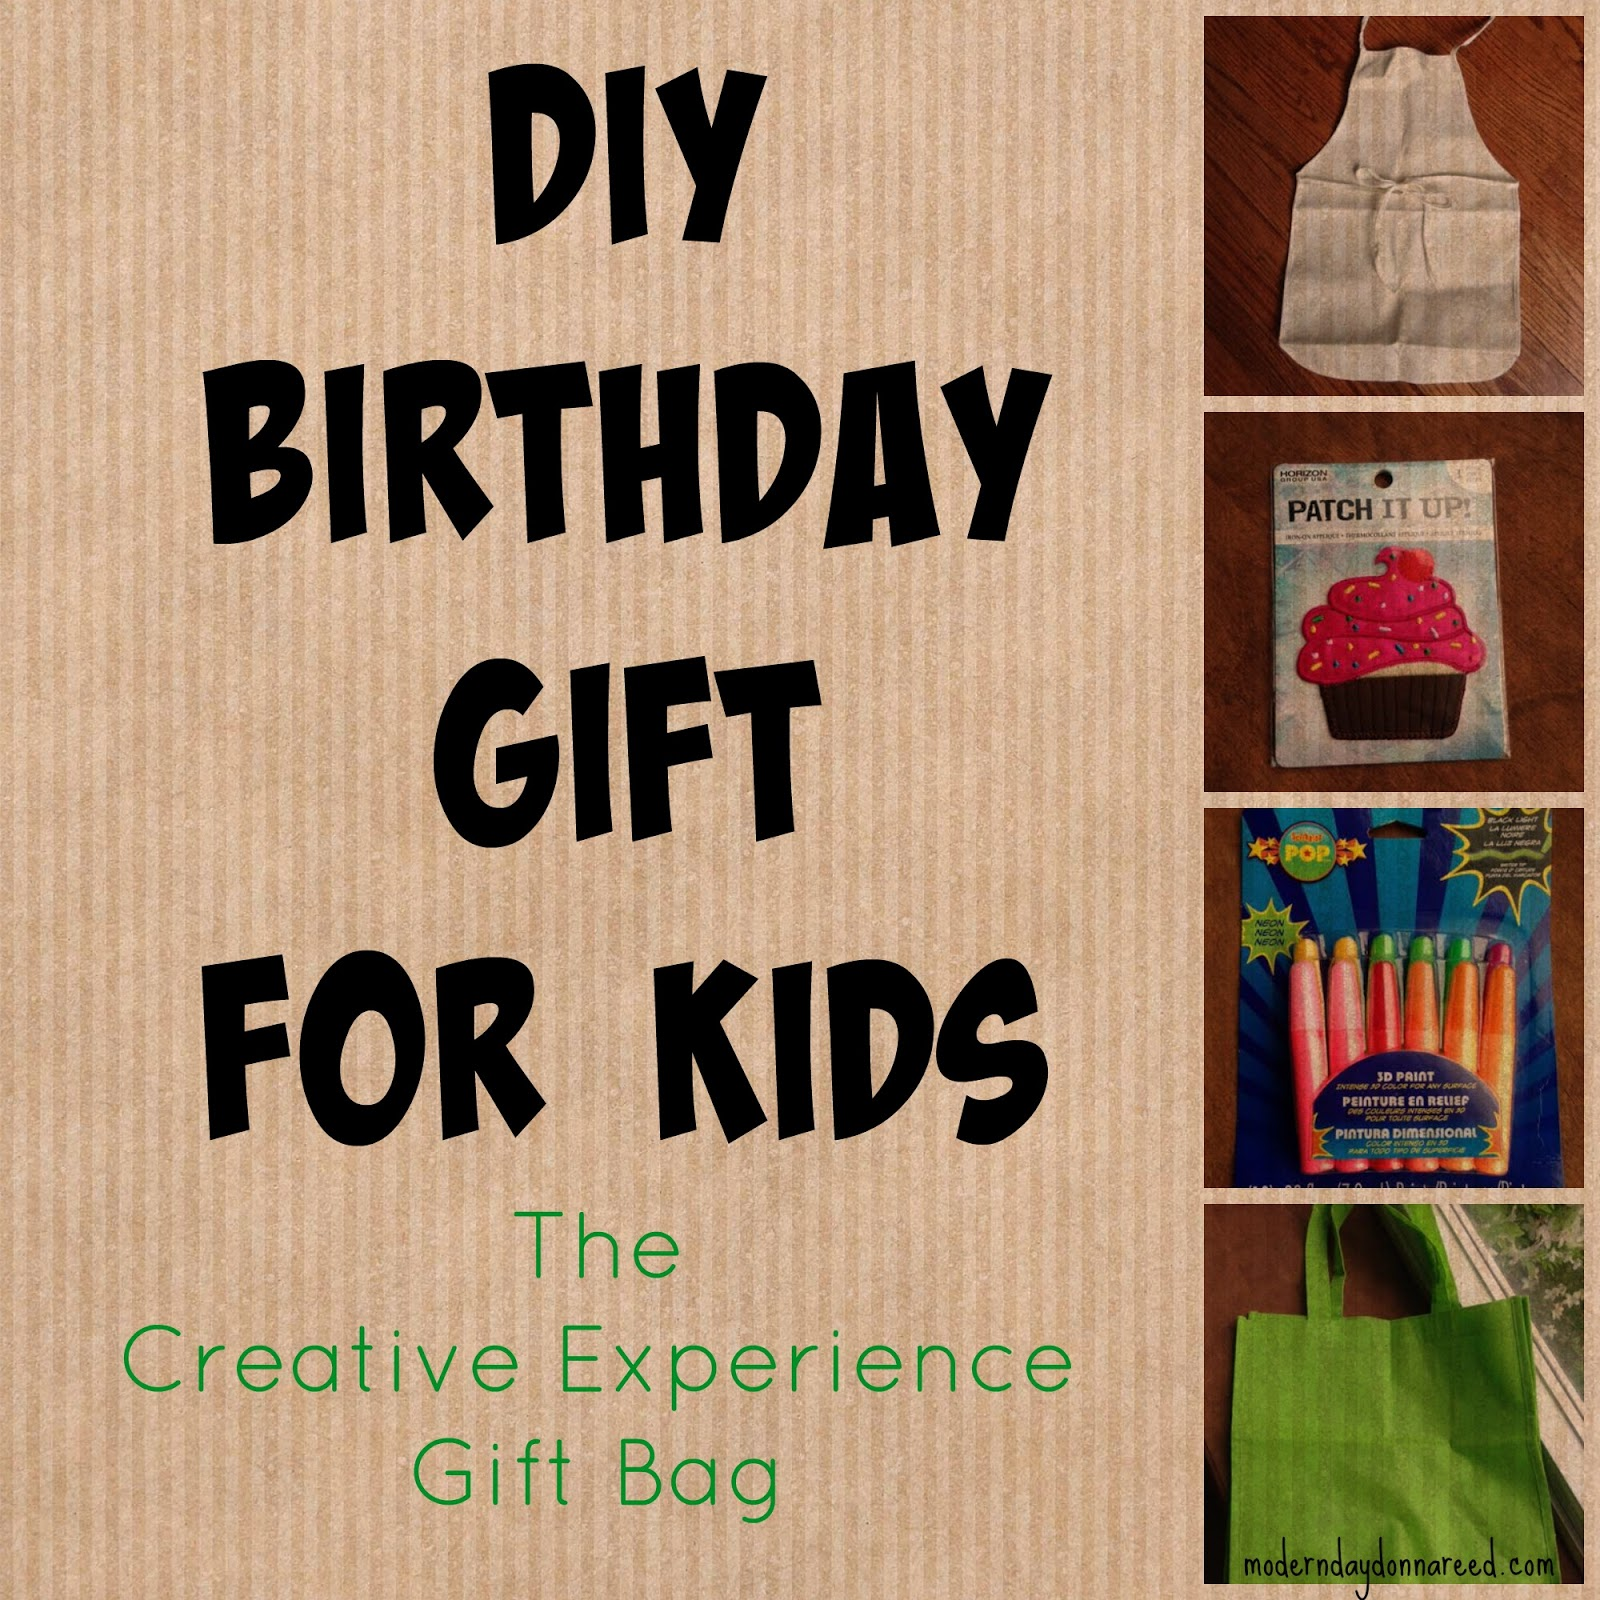 DIY Gift Idea For Kids The Creative Experience Bag